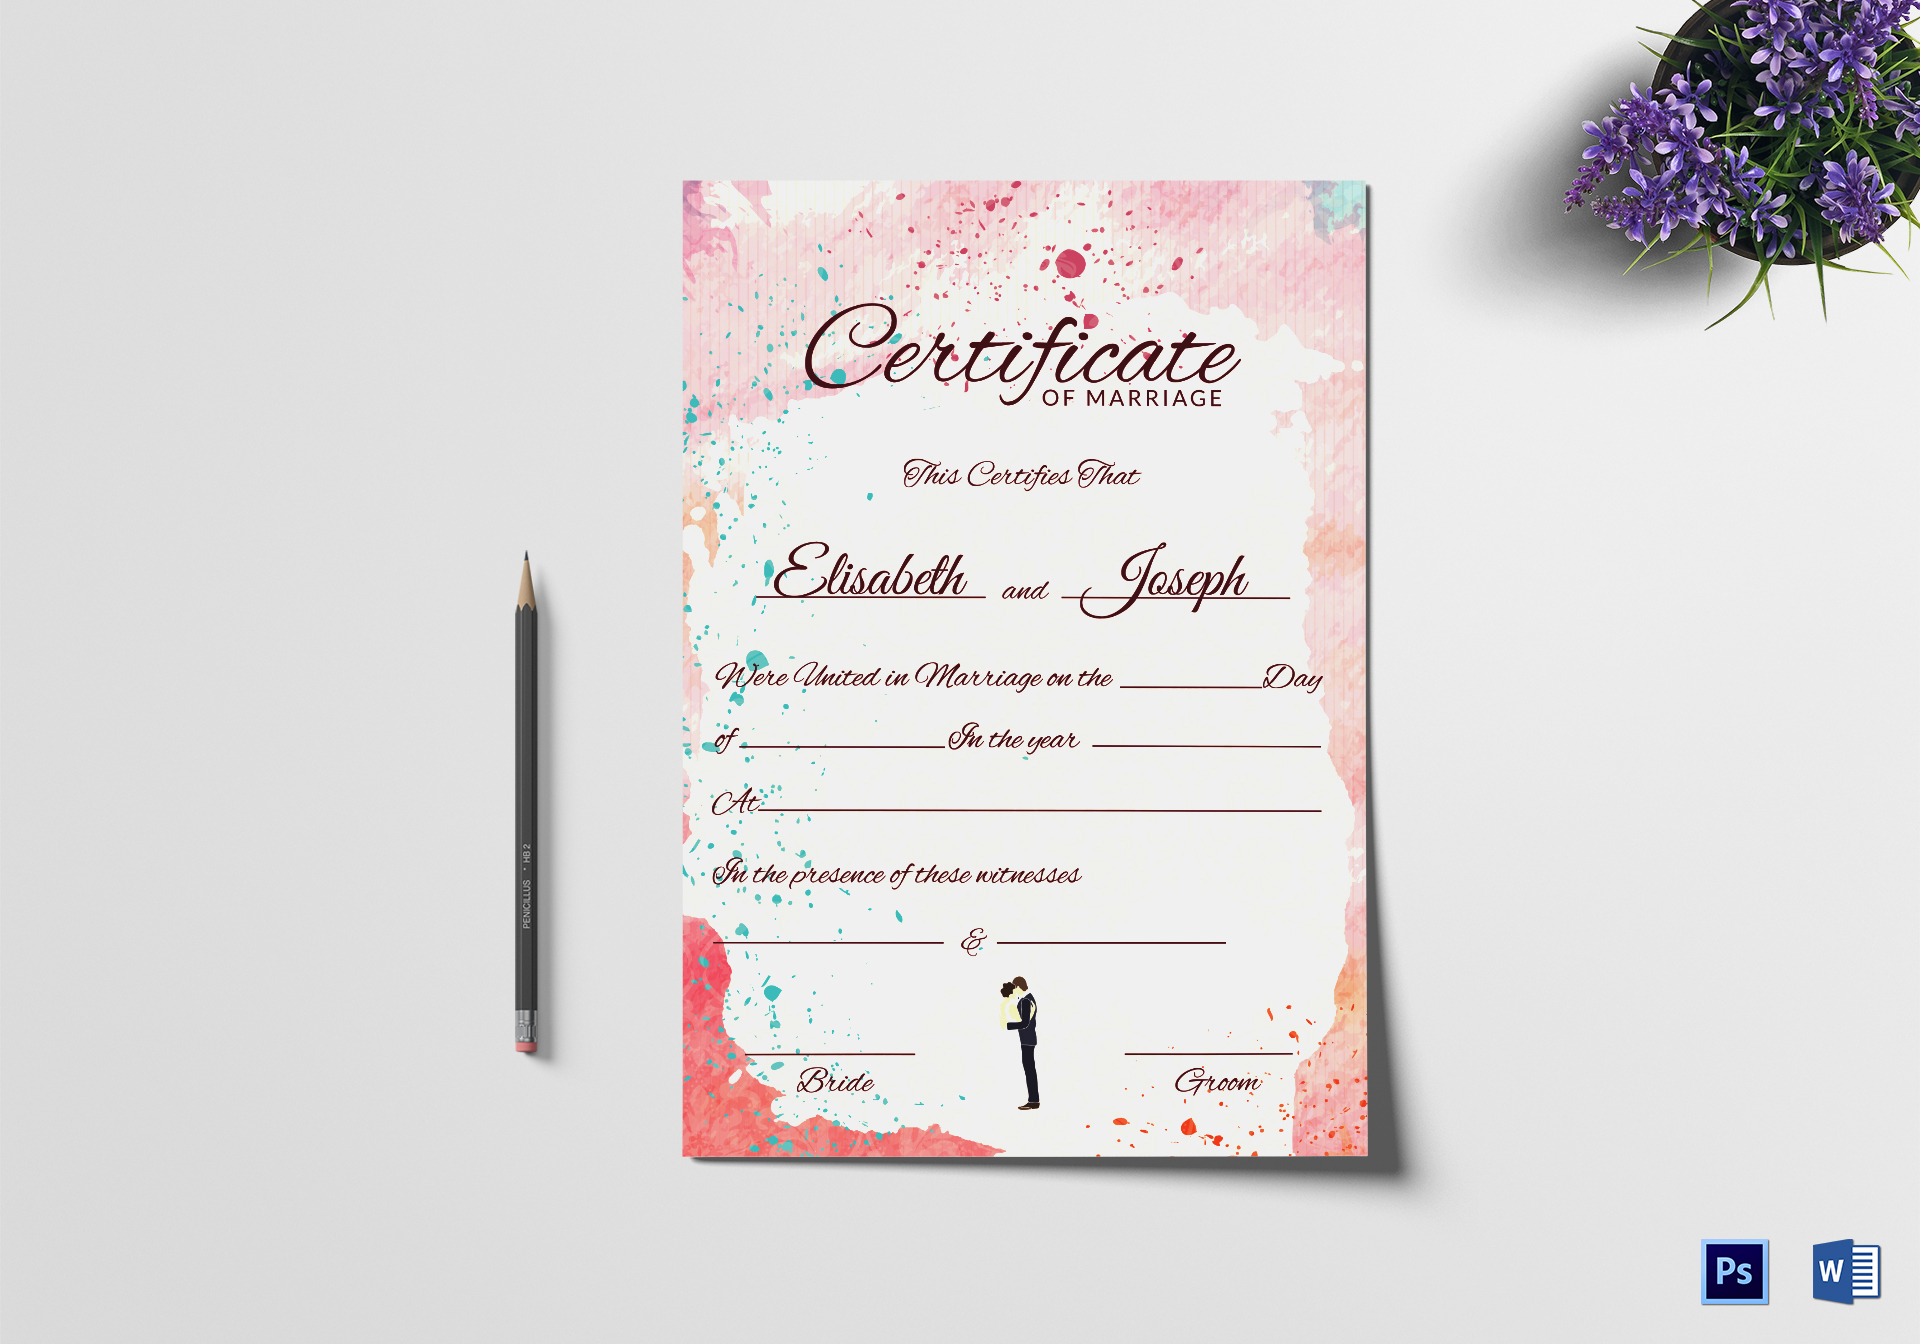 Vintage Marriage Certificate Design Template In Psd Word: Christian Marriage Certificate Design Template In PSD, Word